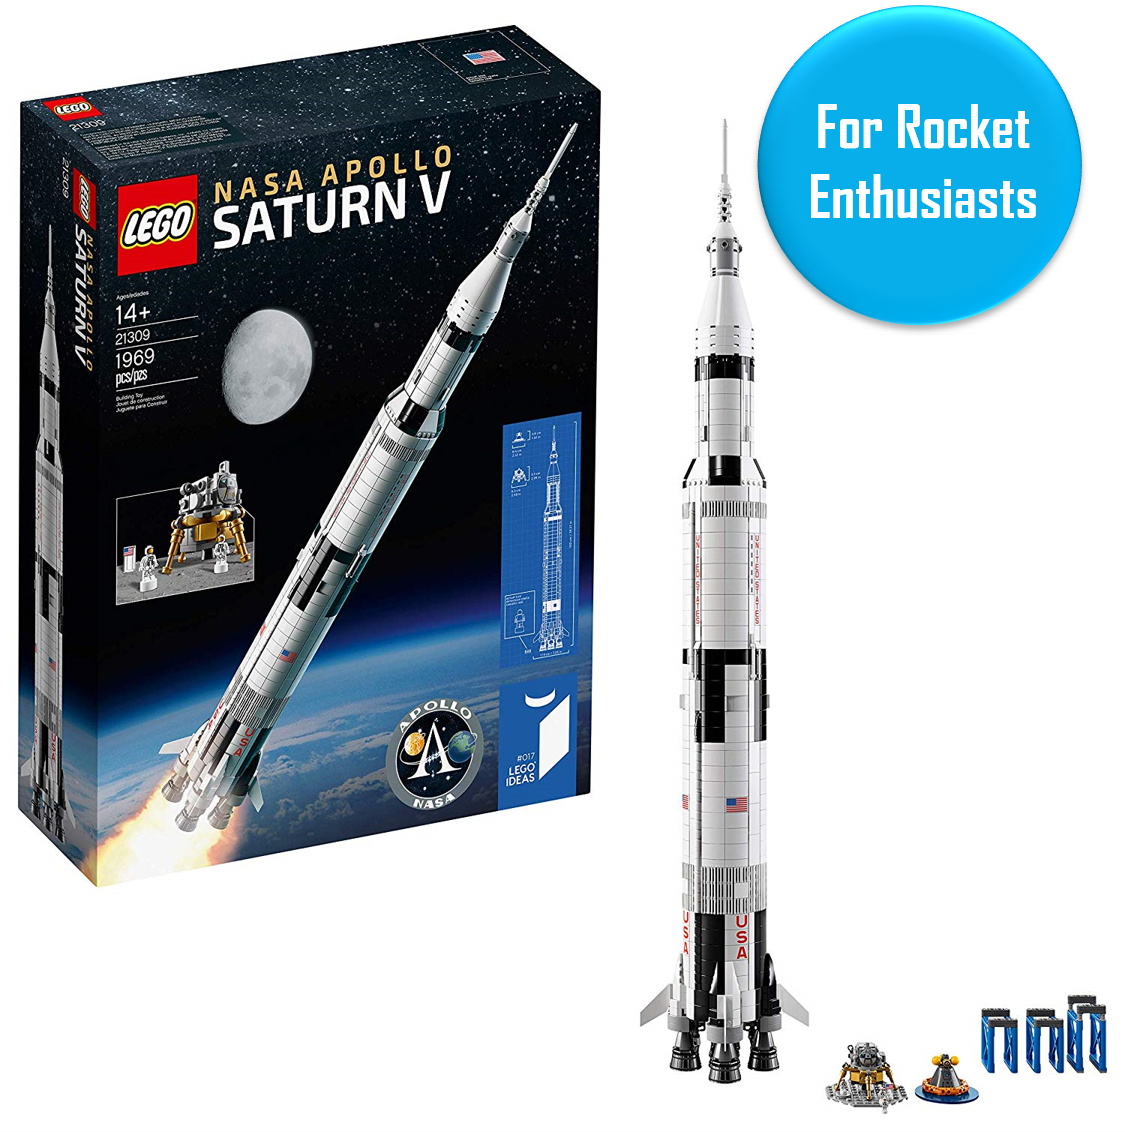 """Saturn V Lego Kit - Ages 14+   For die-hard rocket and/or Apollo enthusiasts. This meter-tall Saturn V is awesome, sells out frequently on Amazon, and as one reviewer stated """"Is the best LEGO kit EVER."""" Oh, and there's exactly 1,969 LEGO pieces ;)"""